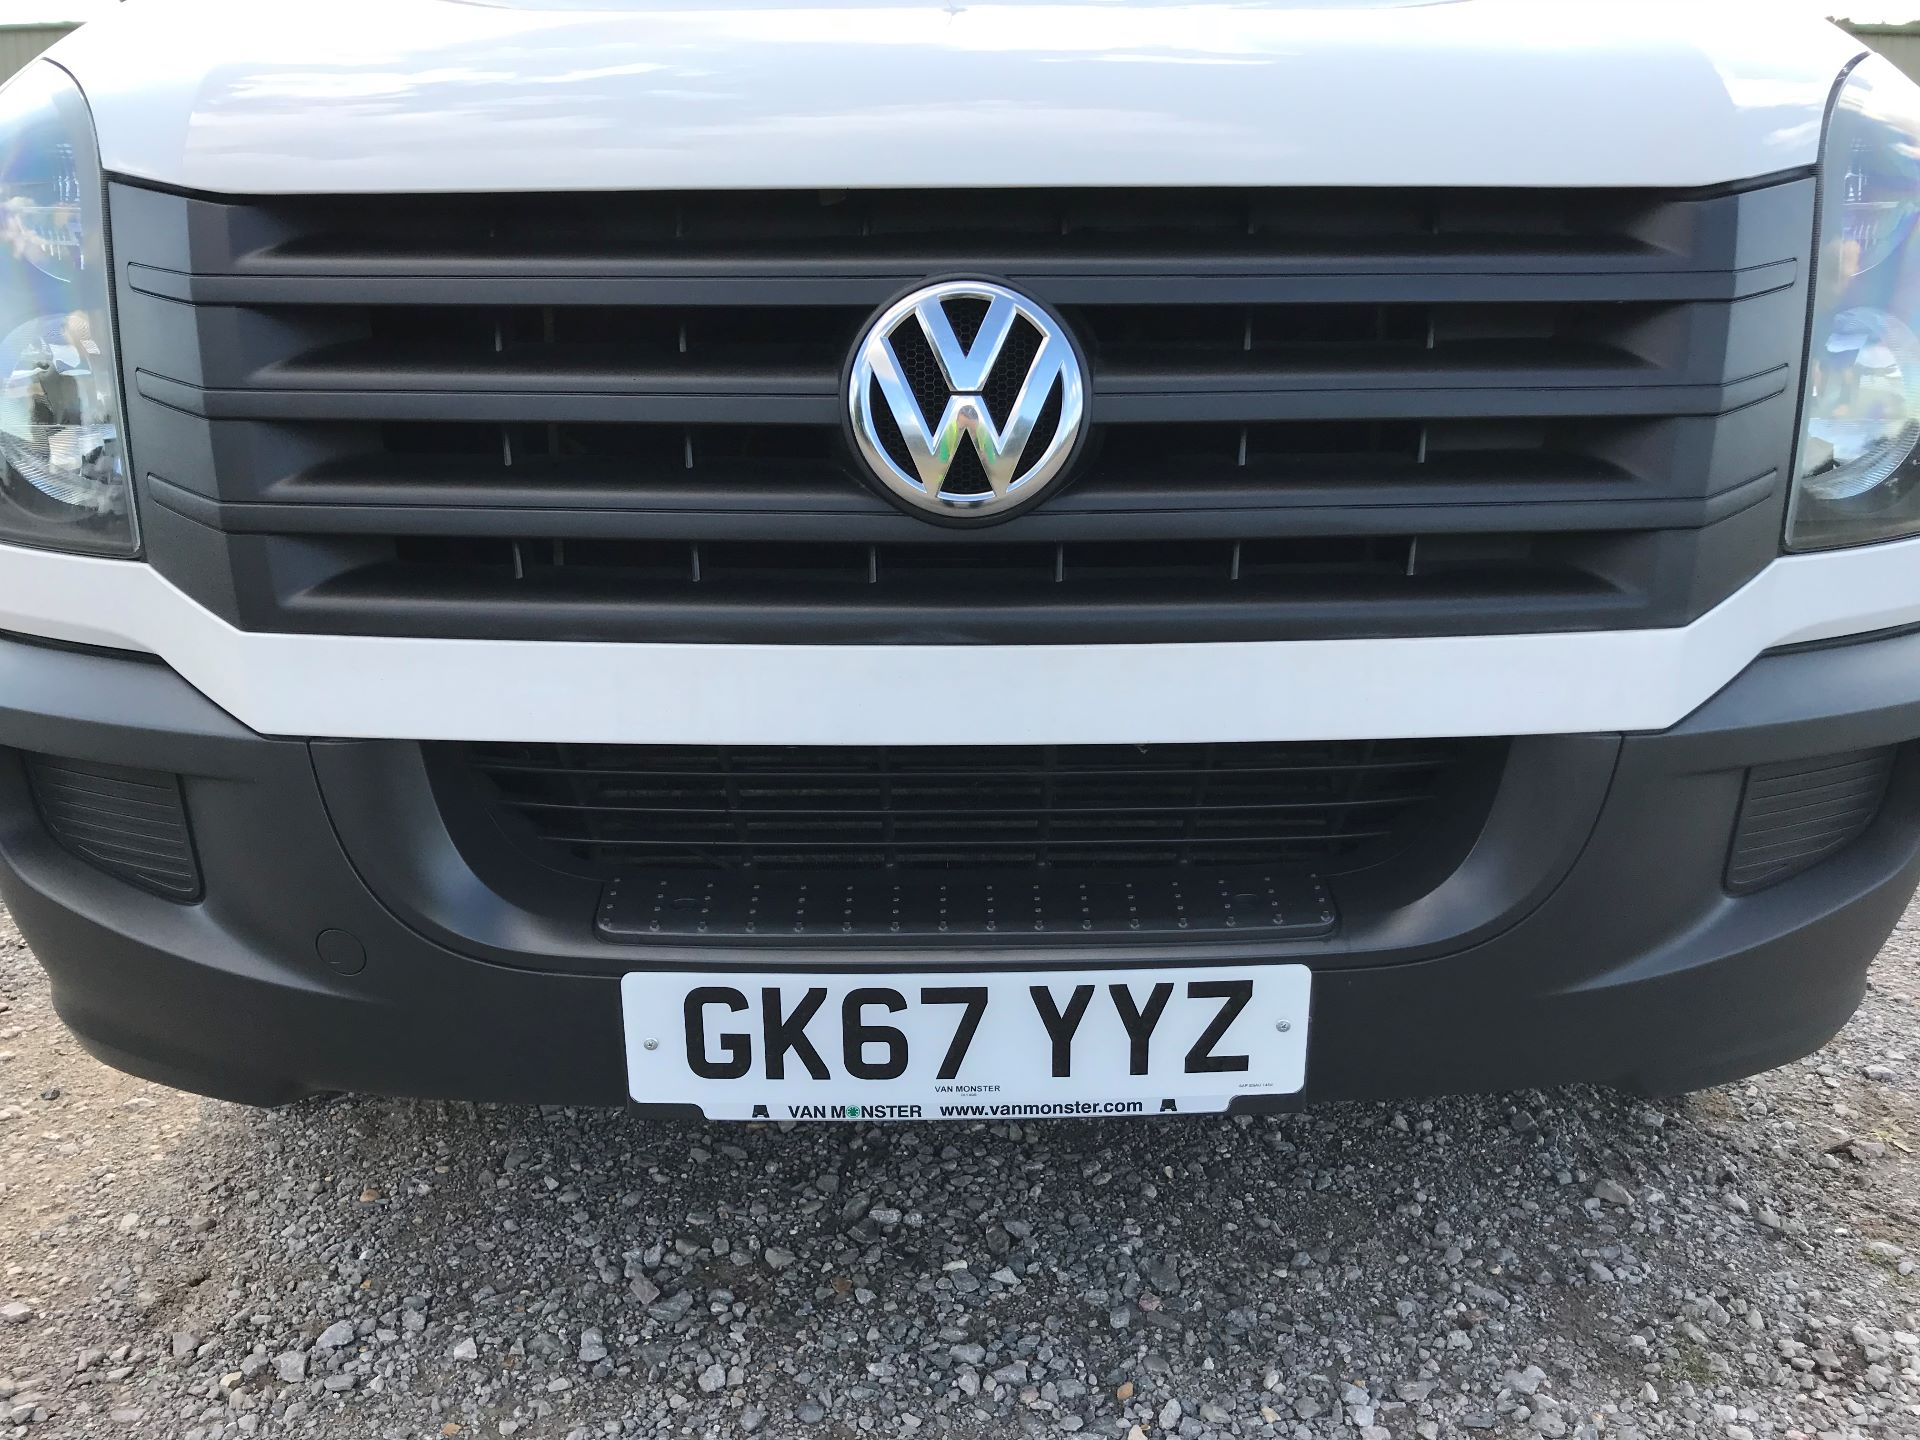 2017 Volkswagen Crafter CR35 LWB DIESEL 2.0 BMT TDI 140PS HIGH ROOF EURO 6 (GK67YYZ) Image 14